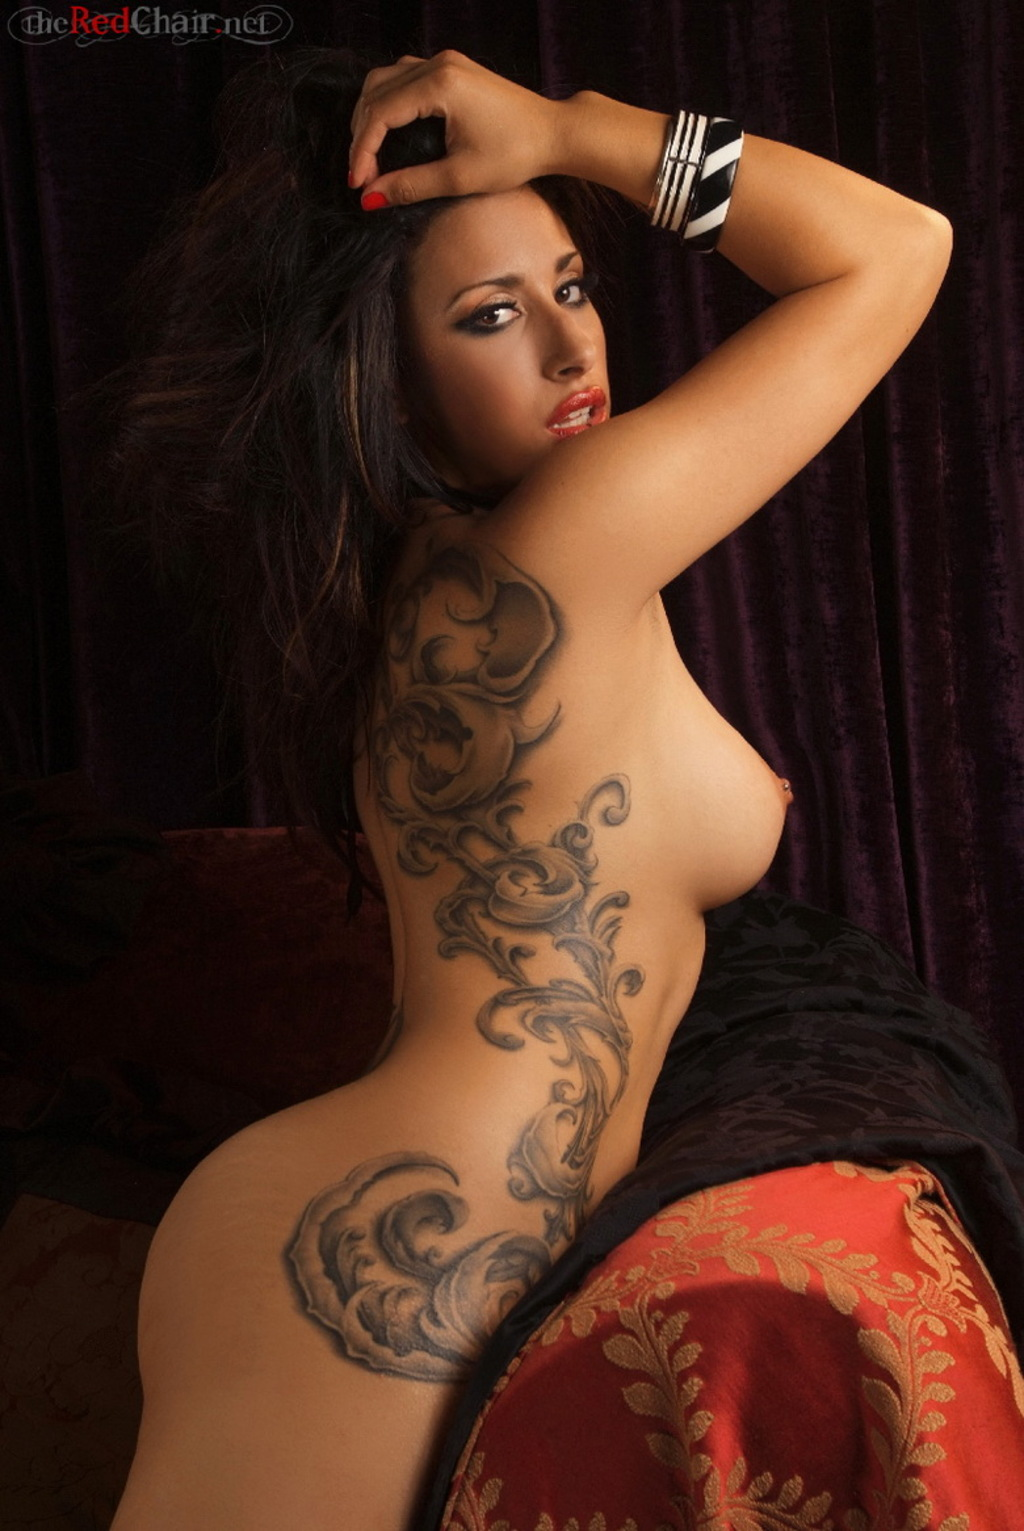 Sexy Inked Tangent - Naked Women   Nude Women   Free Nude Girls